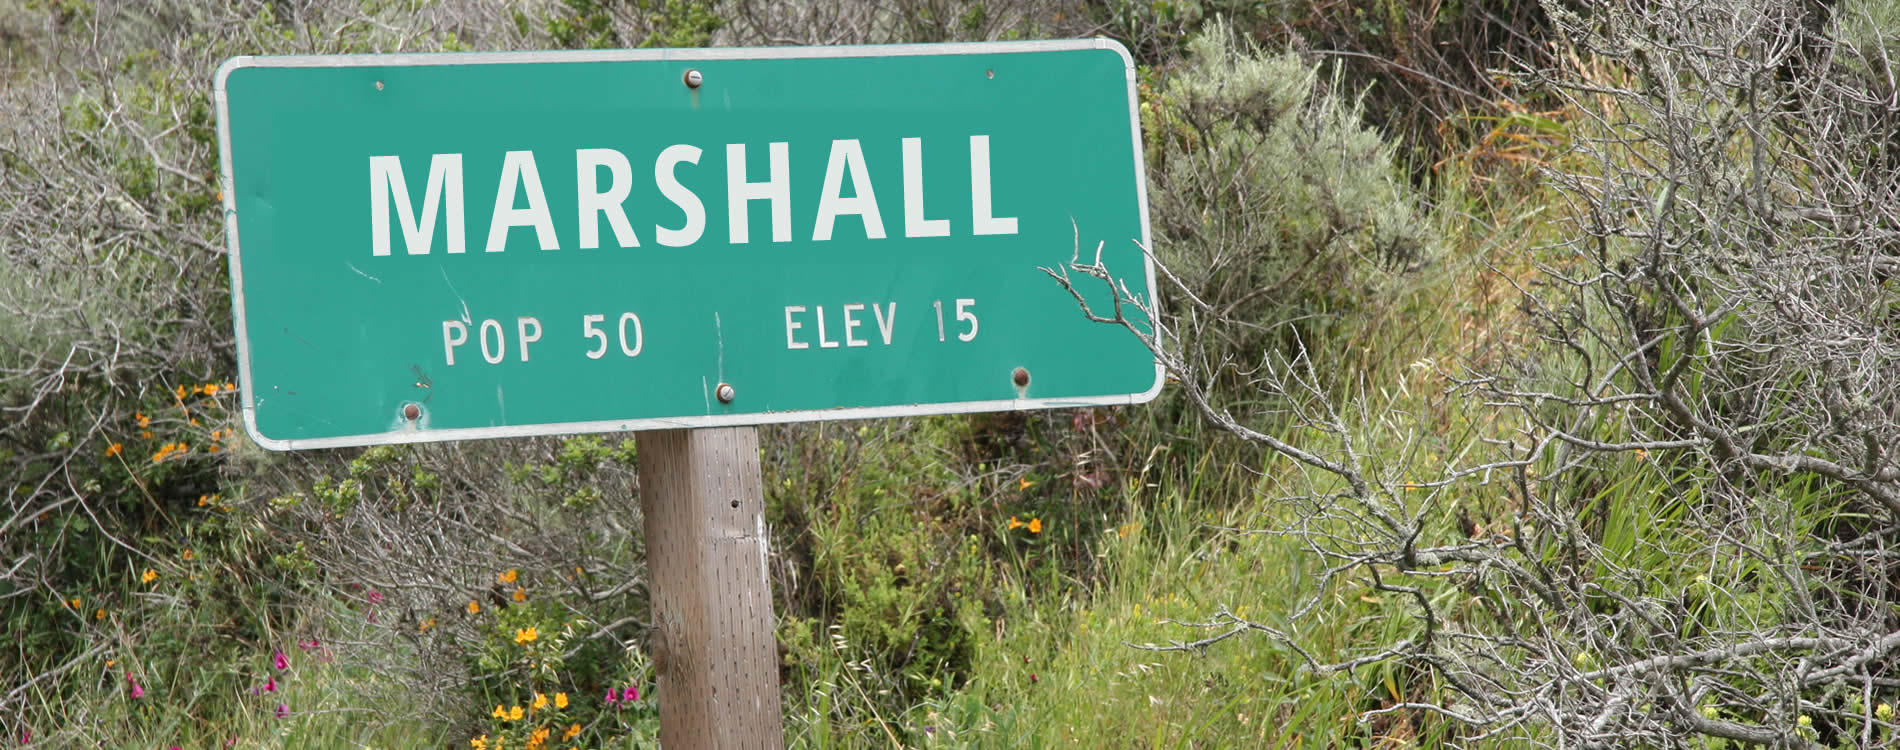 marshall california point reyes national seashore